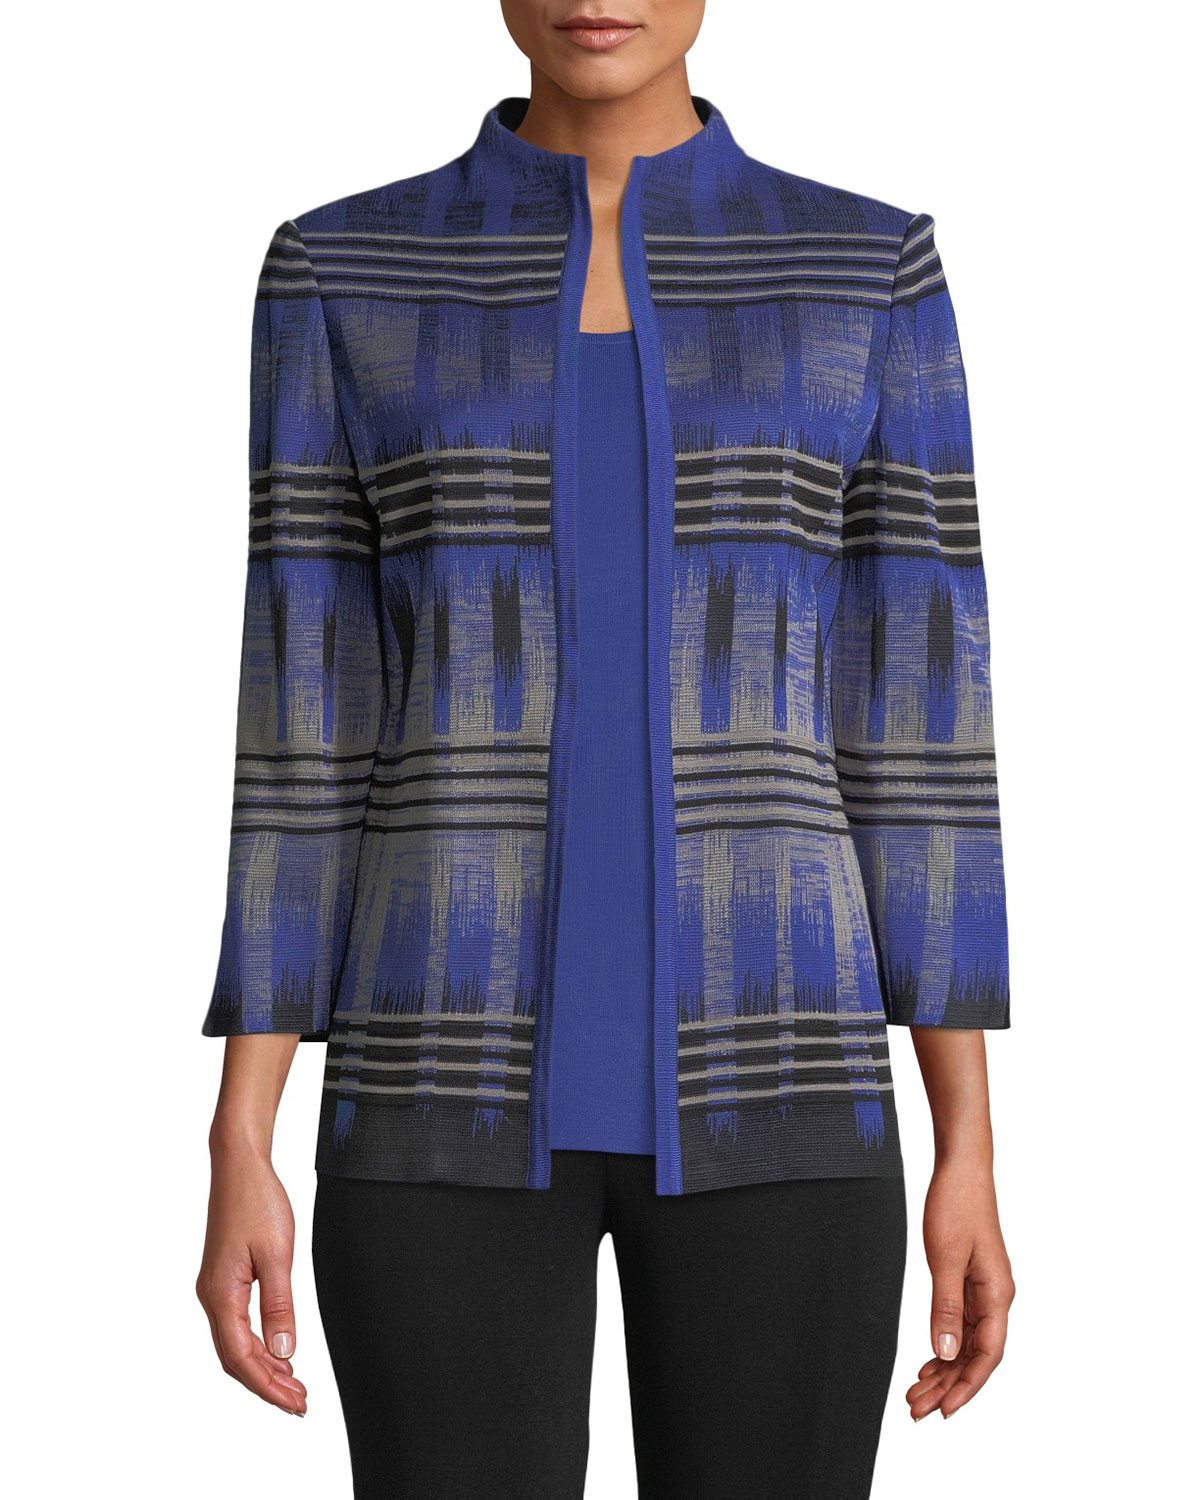 High-Neck Graphic Knit Jacket